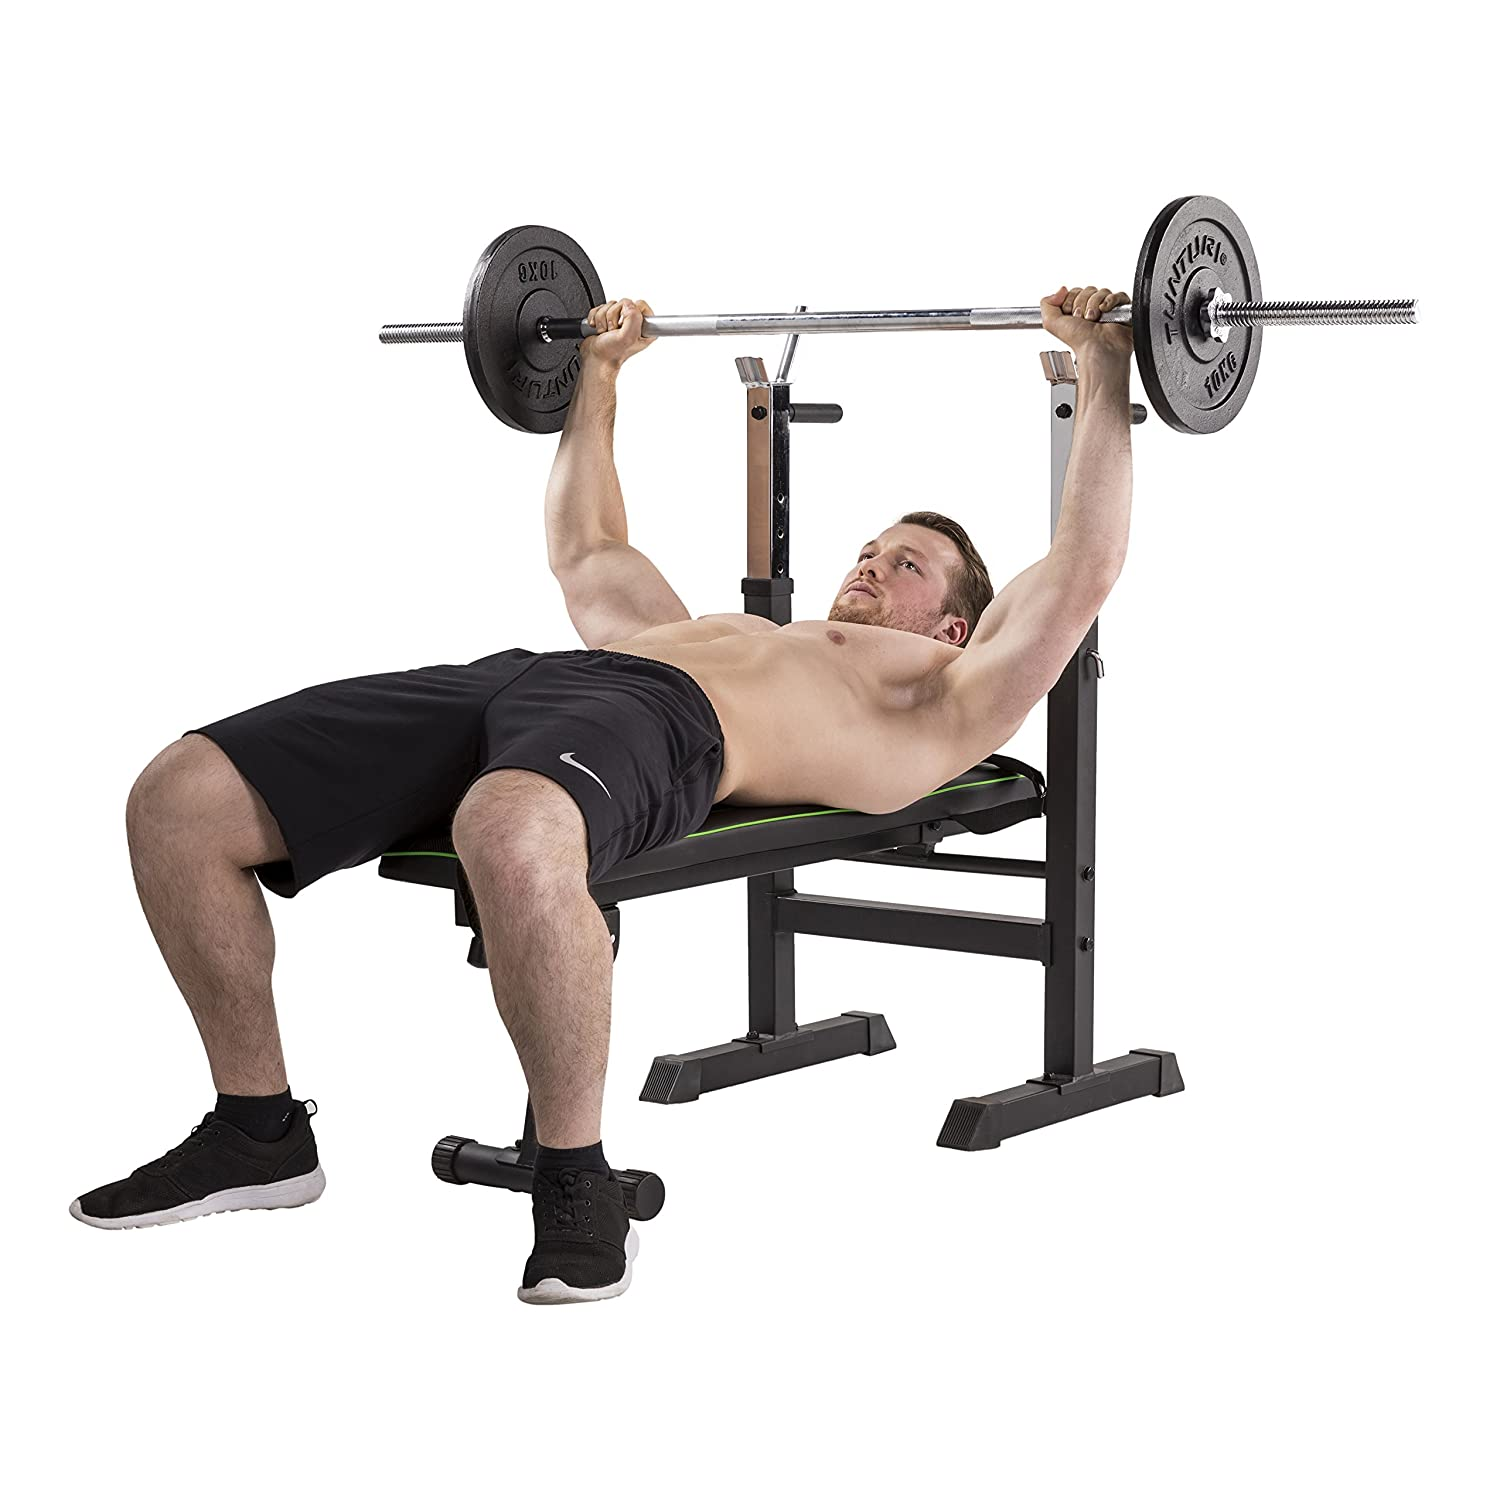 Tunturi WB20 Basic Weight Bench Hantelbank, schwarz, 1